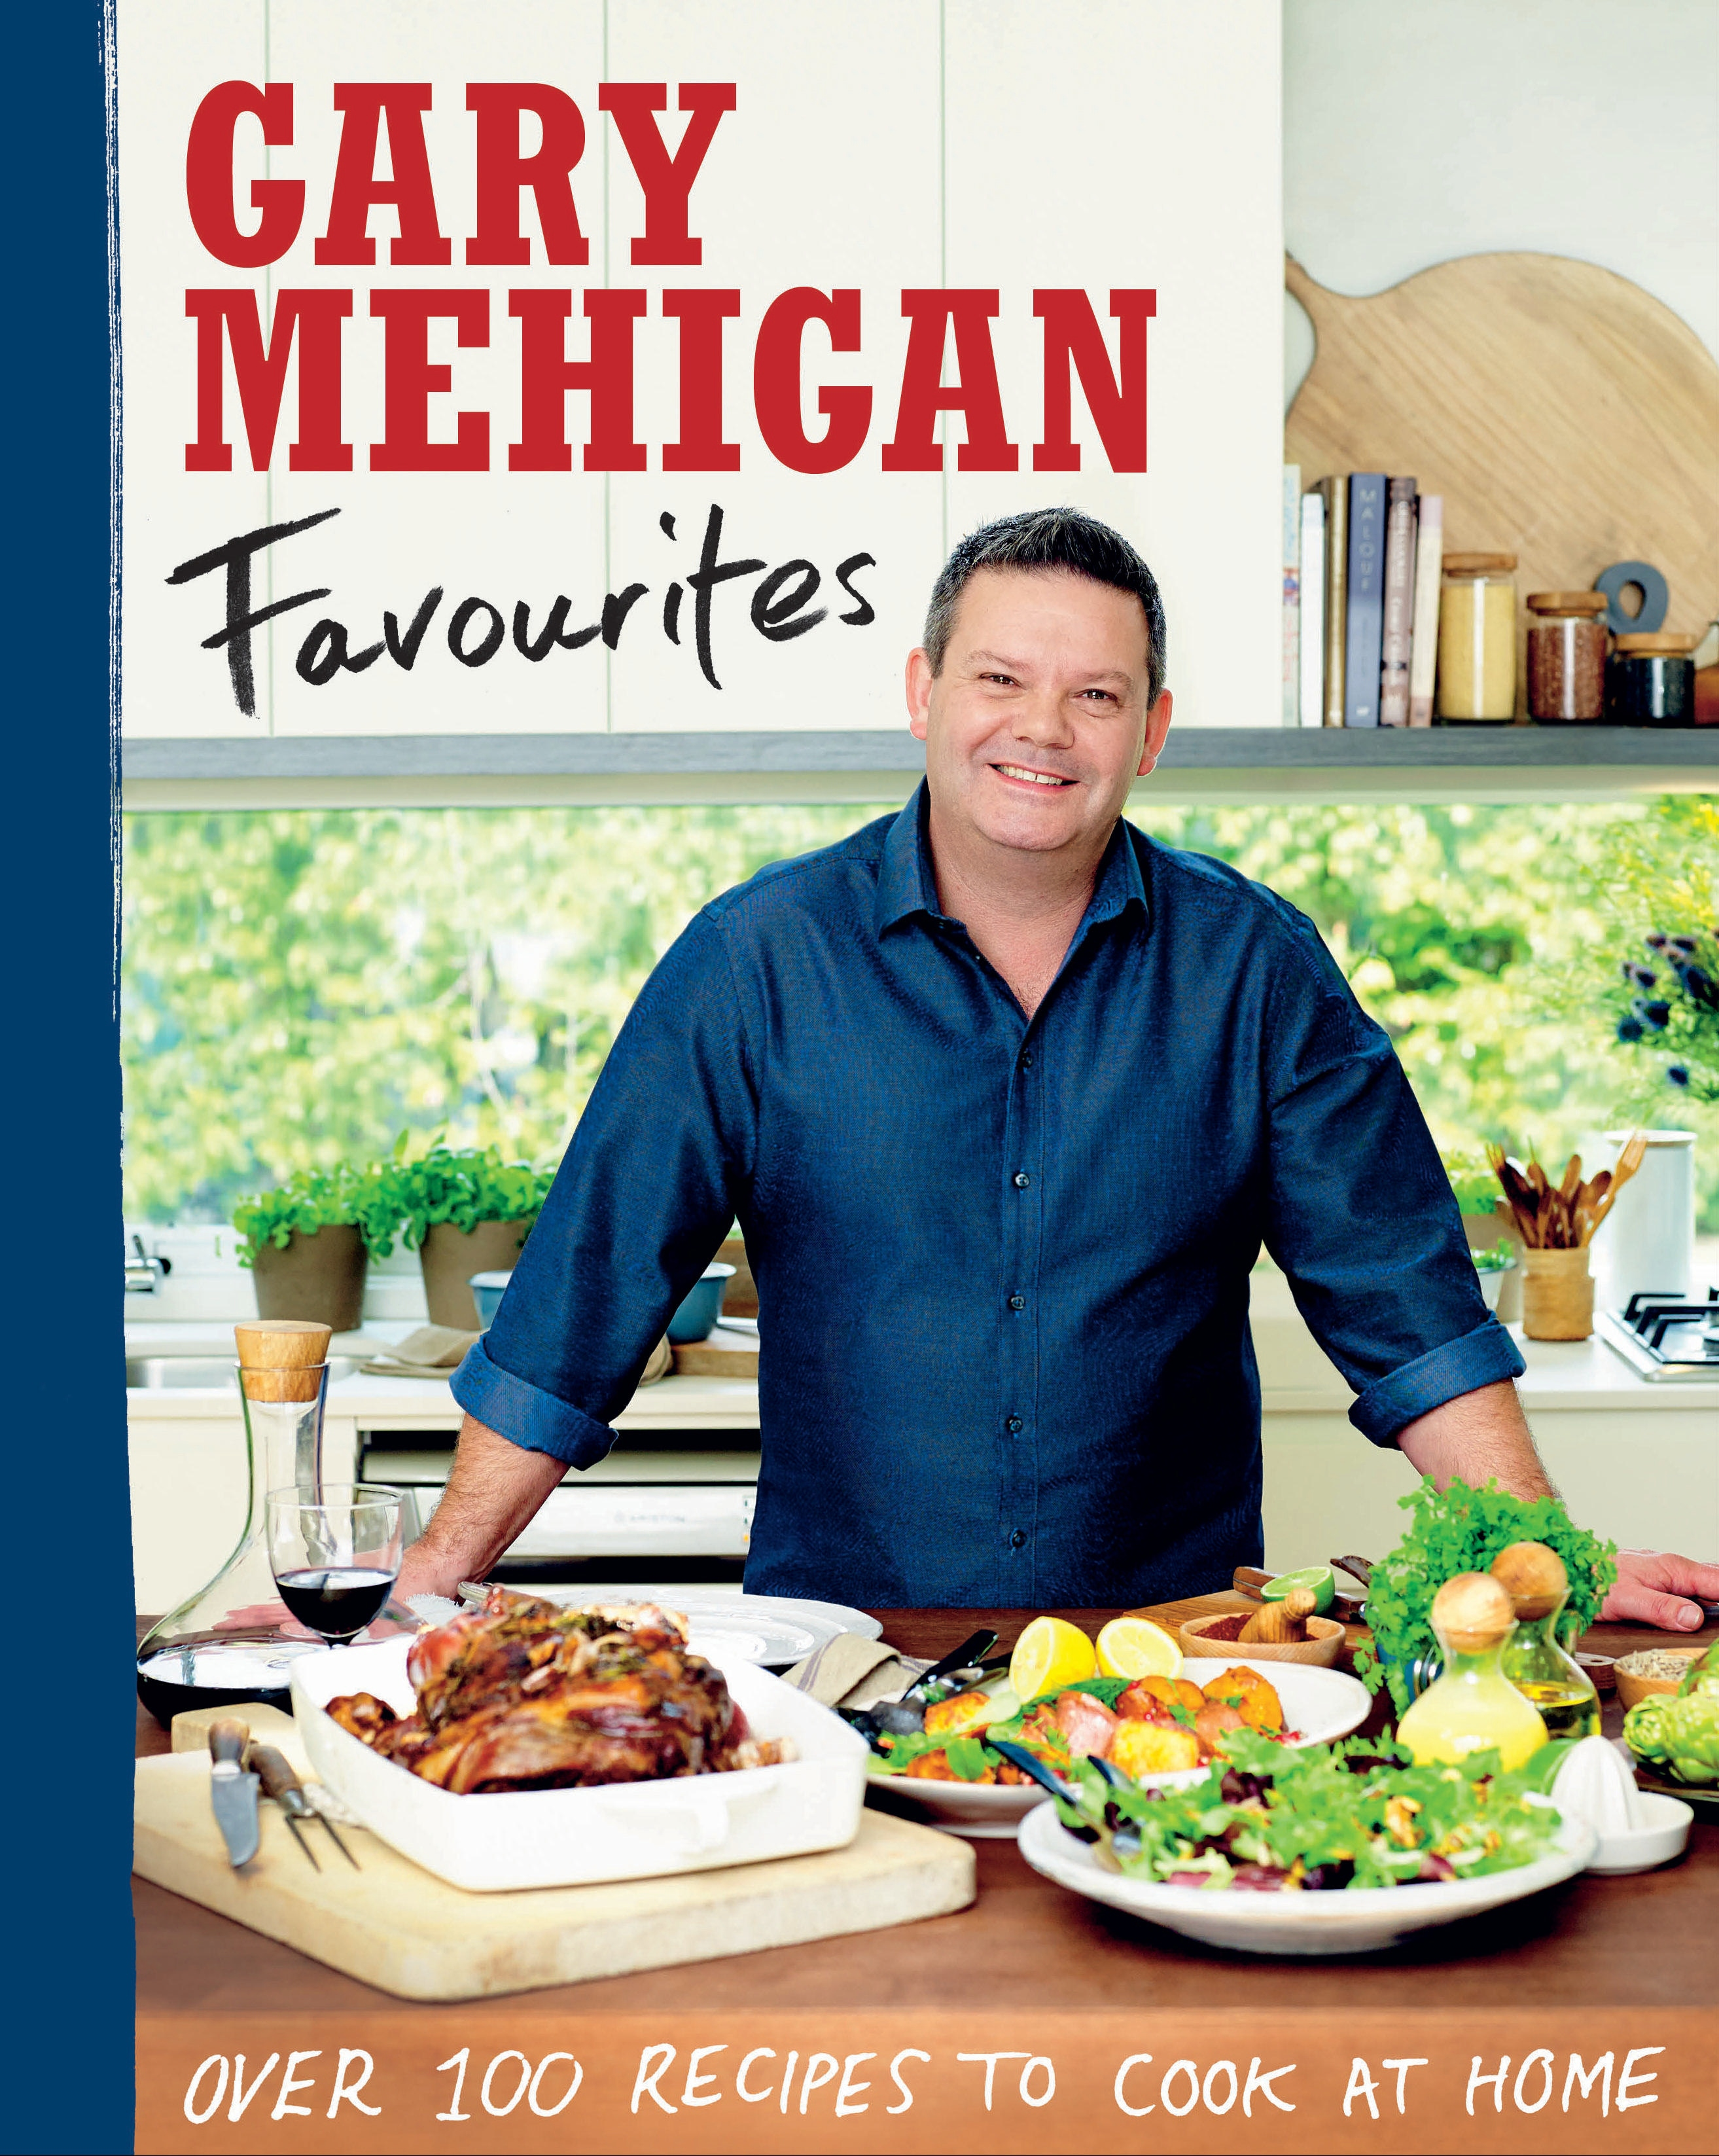 Favourites: Over 100 Recipes to Cook at Home by Gary Mehigan, ISBN: 9781921383304